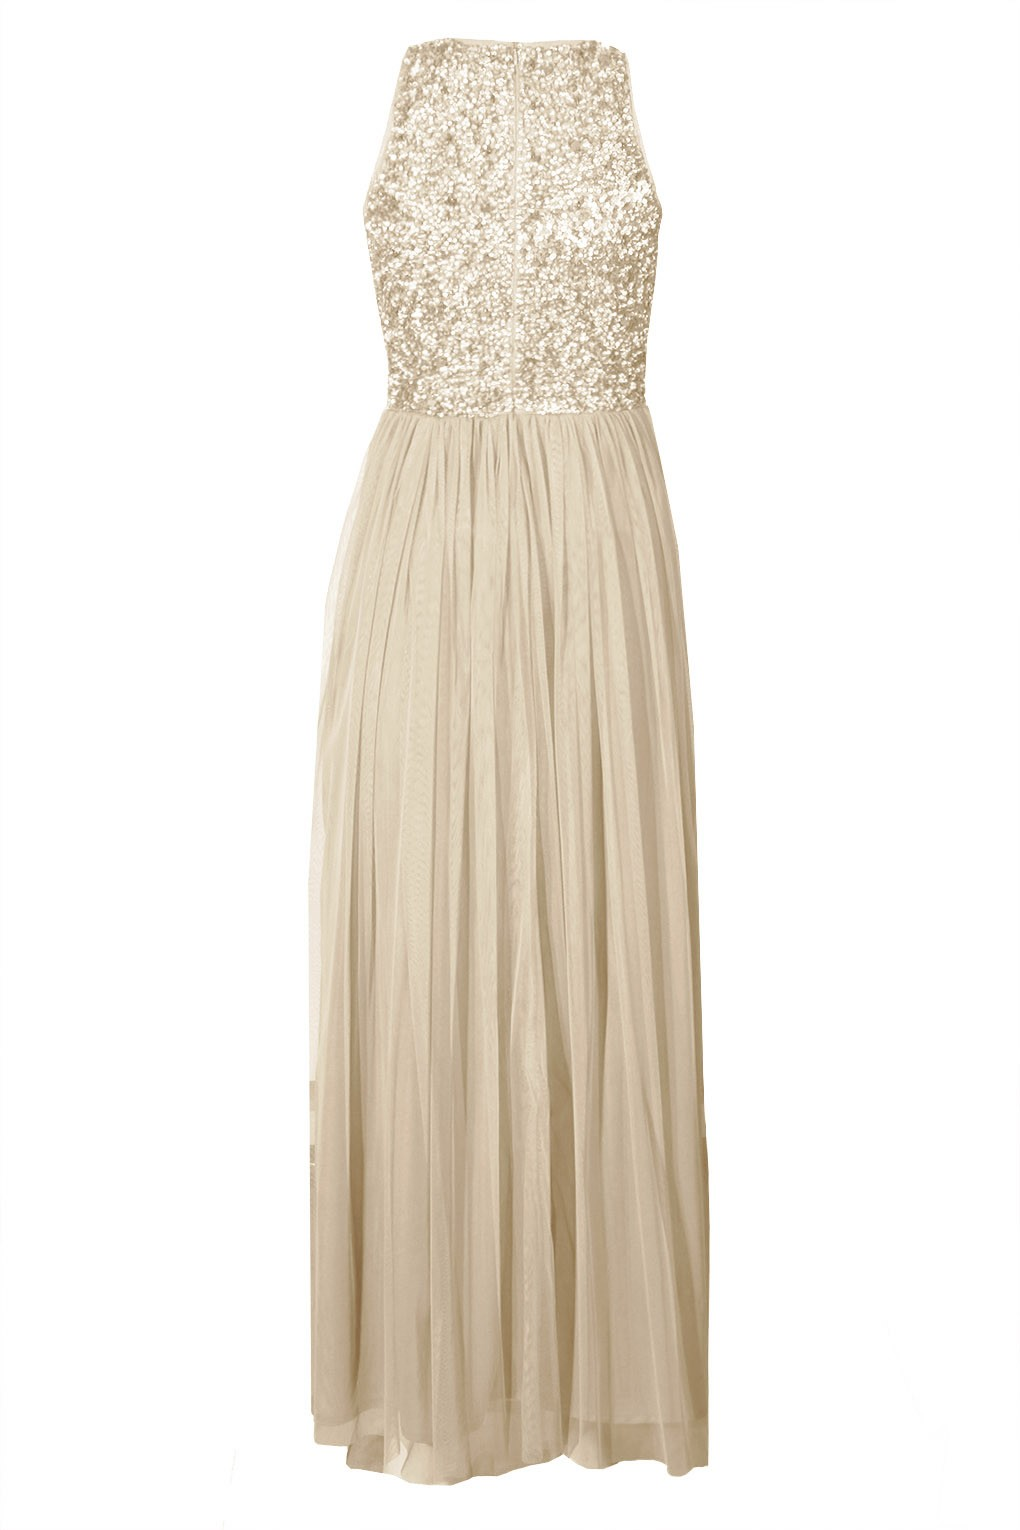 Lace Amp Beads Picasso Cream Embellished Maxi Dress Party